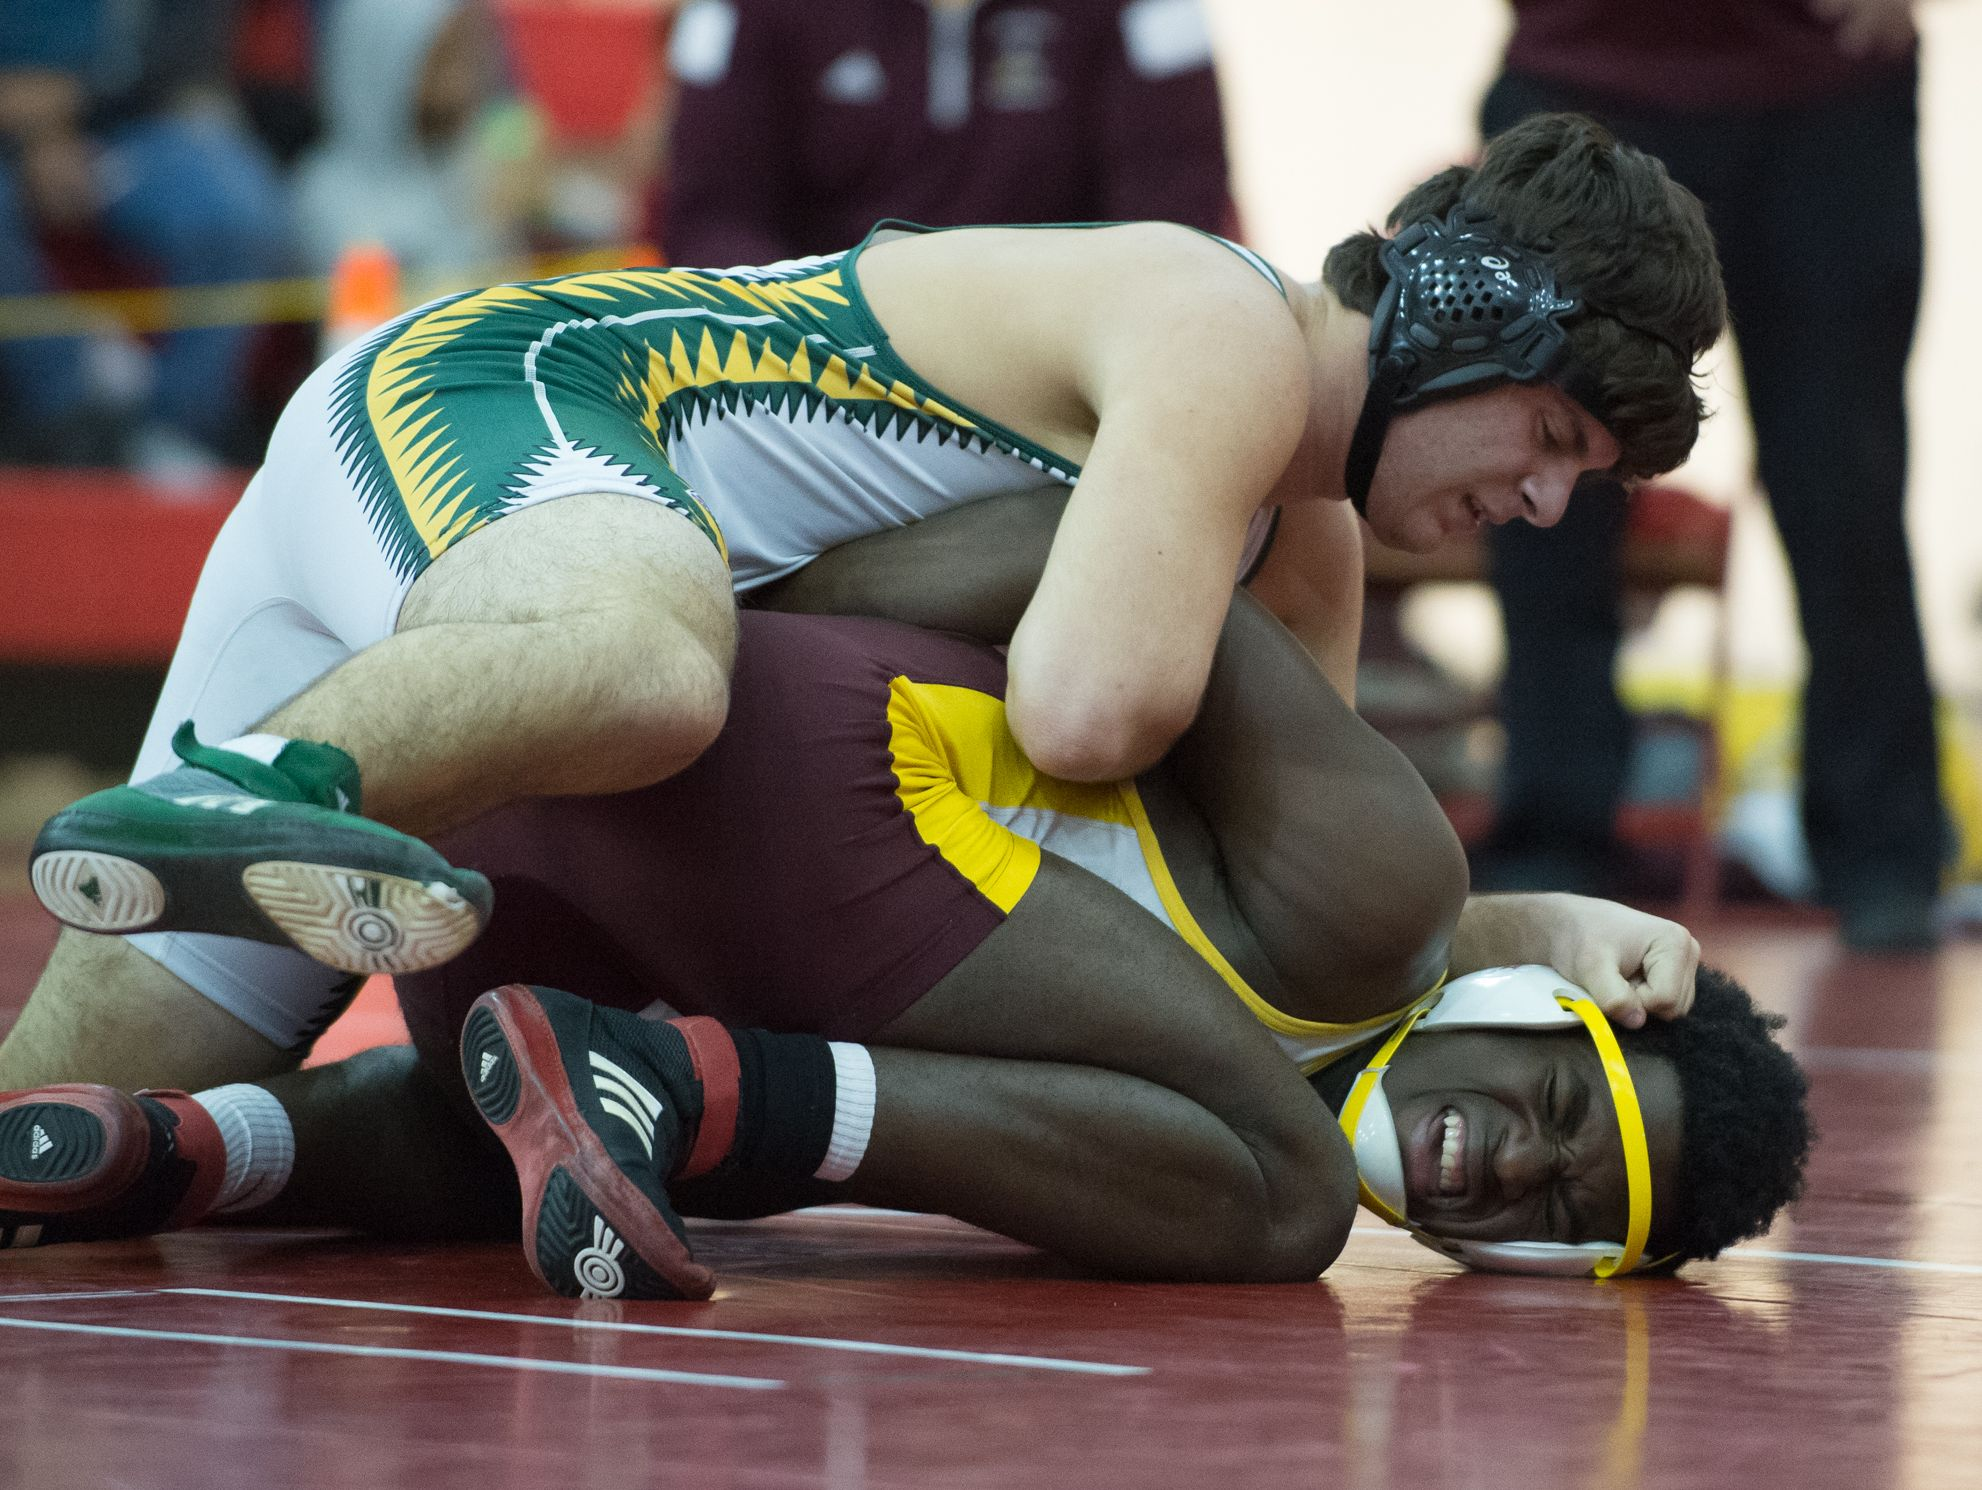 Milford's Bevensky Augustine works to get out from a hold by Indian River's John Keller in the 182 pound match at DIAA Dual Meet Wrestling State Championship at Smyrna High School.